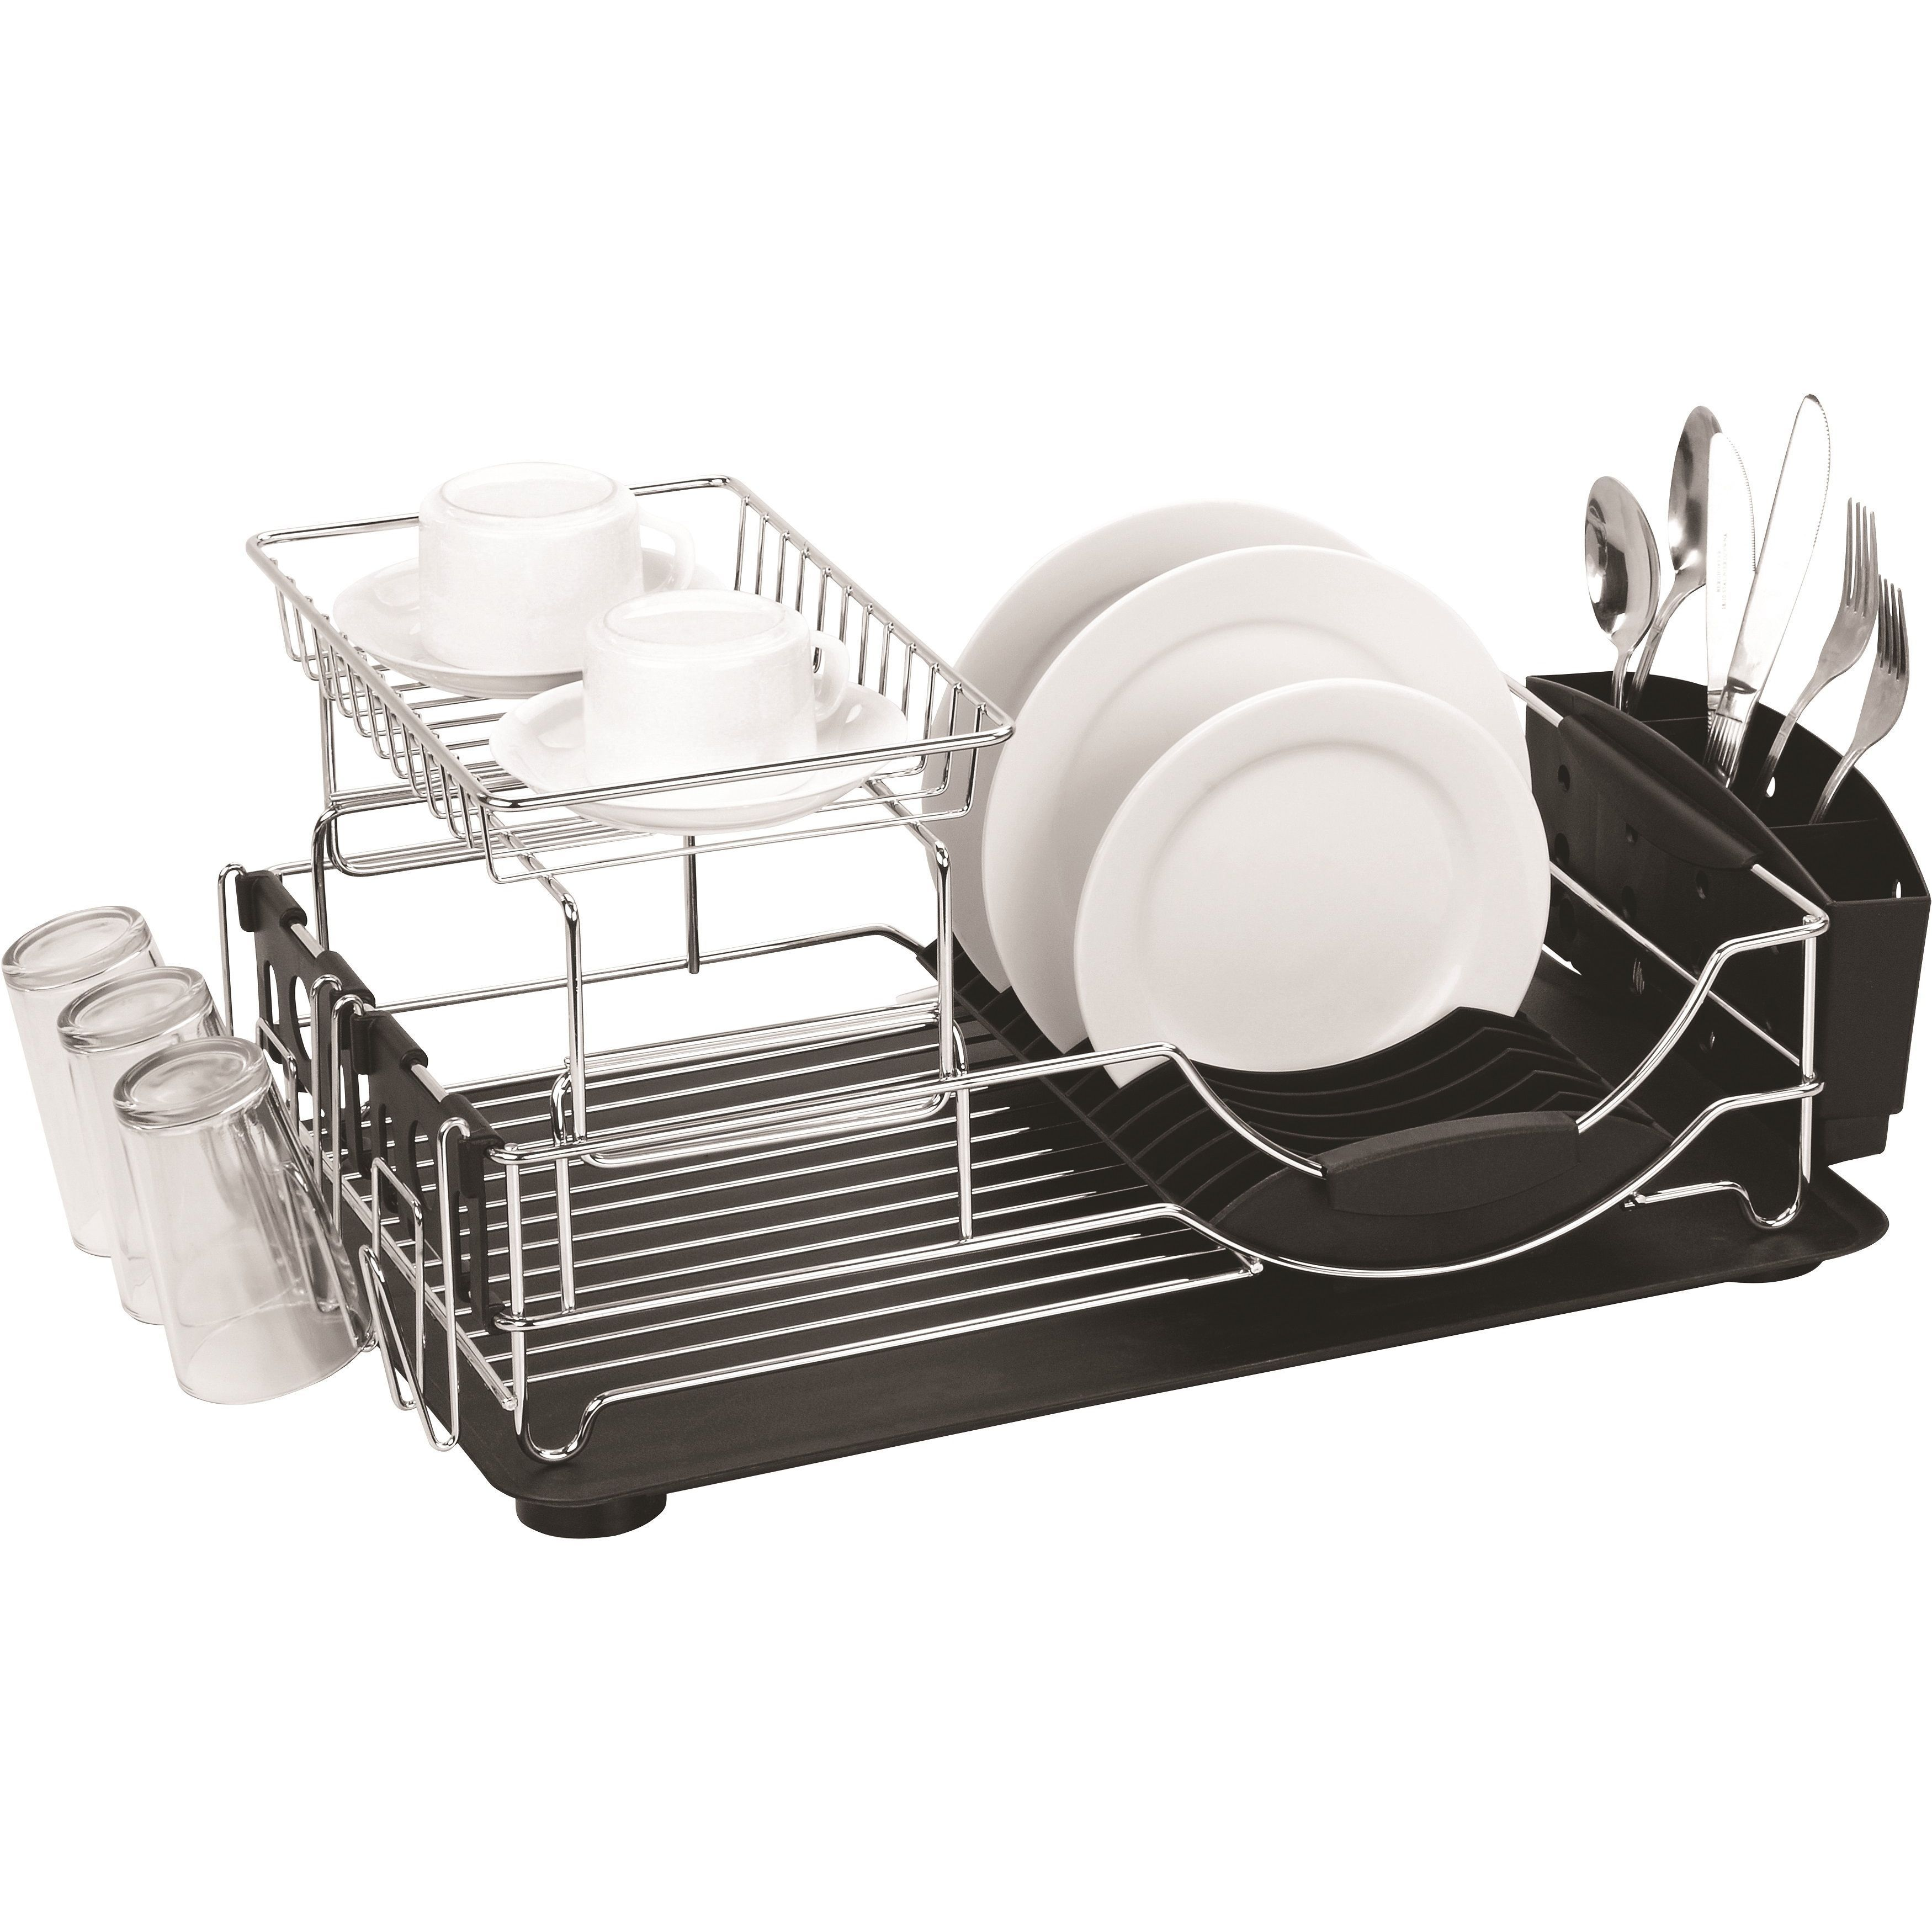 Home Basics 2 Tier Dish Rack Endearing Home Basics Deluxe 2Tier Dish Rack Drainer White Metal  Dish Inspiration